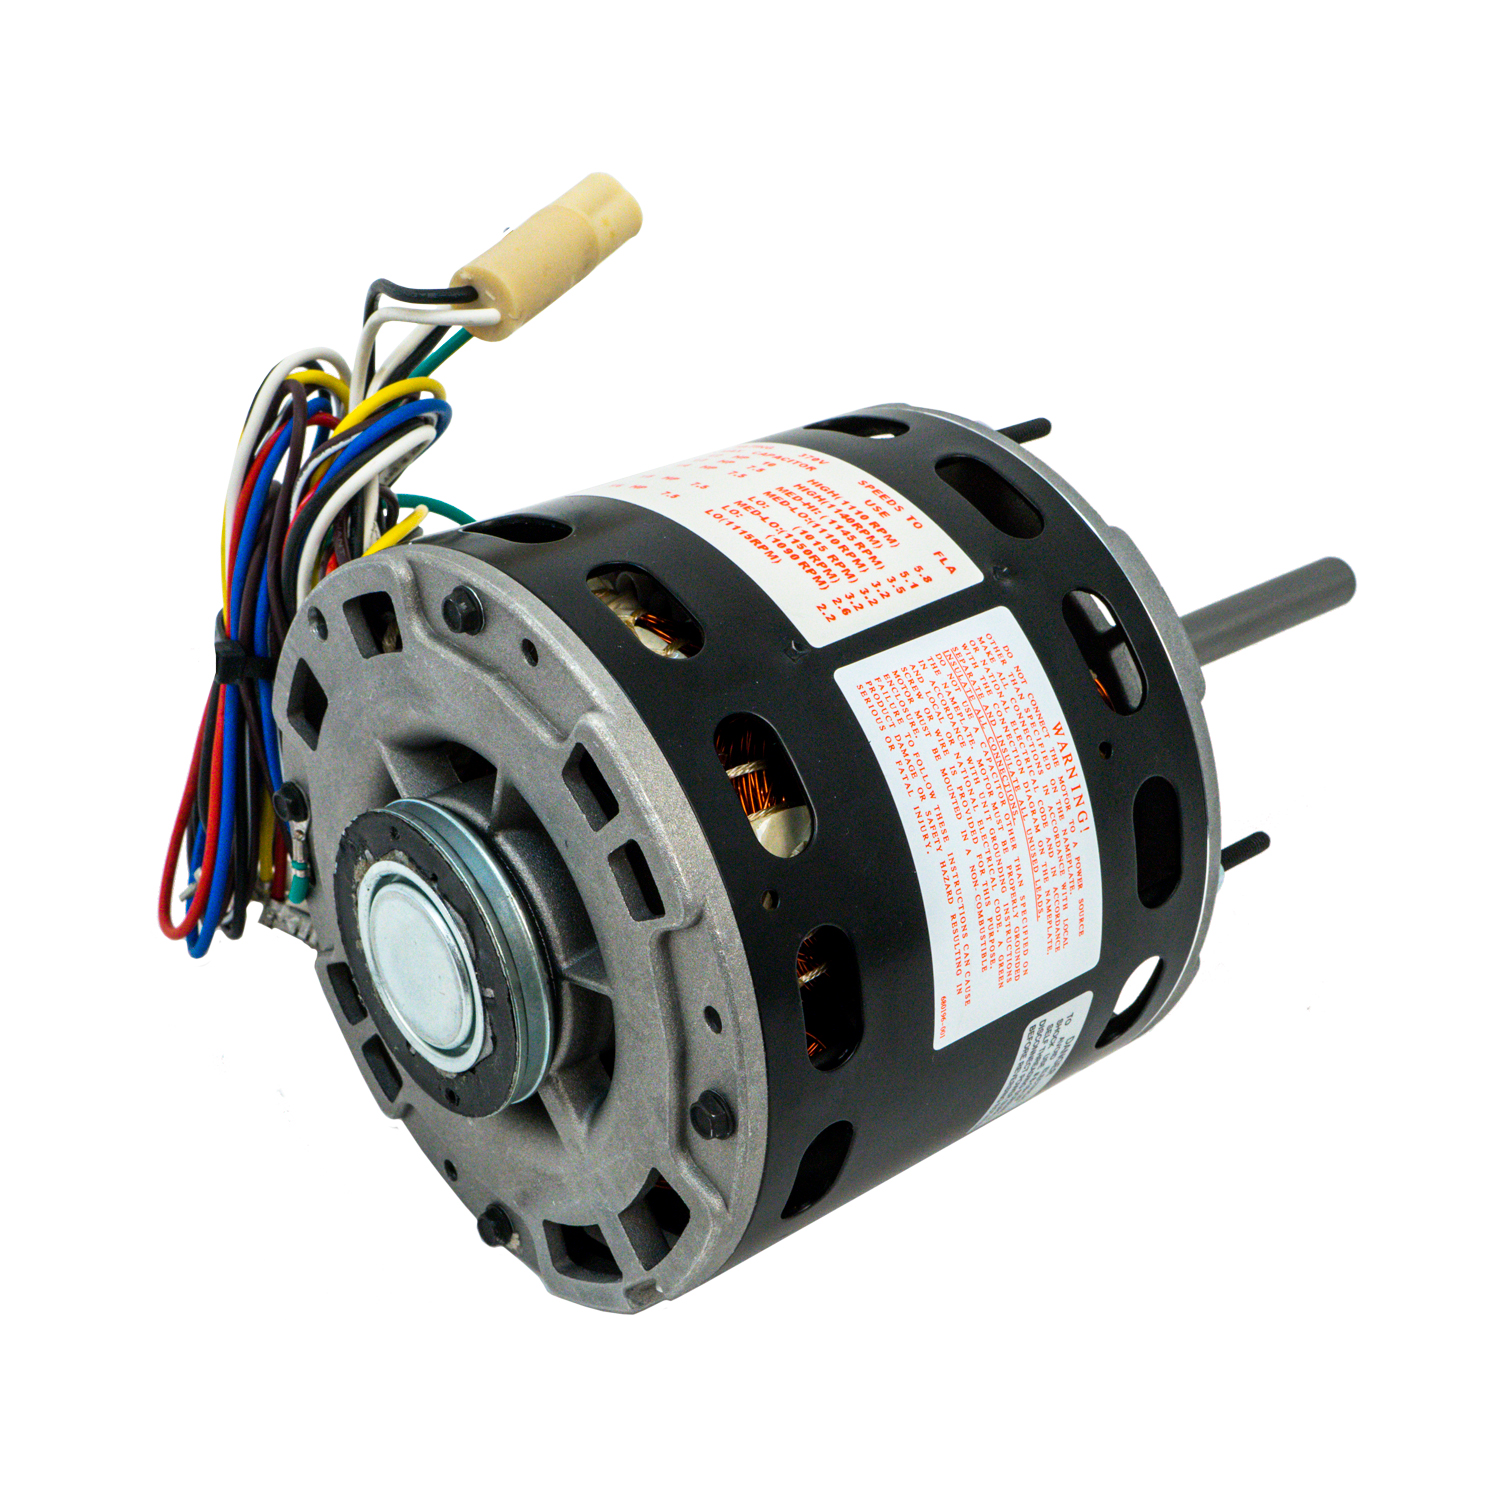 48 Frame Direct Drive Blower Motor, 1/4 HP, 115 Volts, 1075 ... on